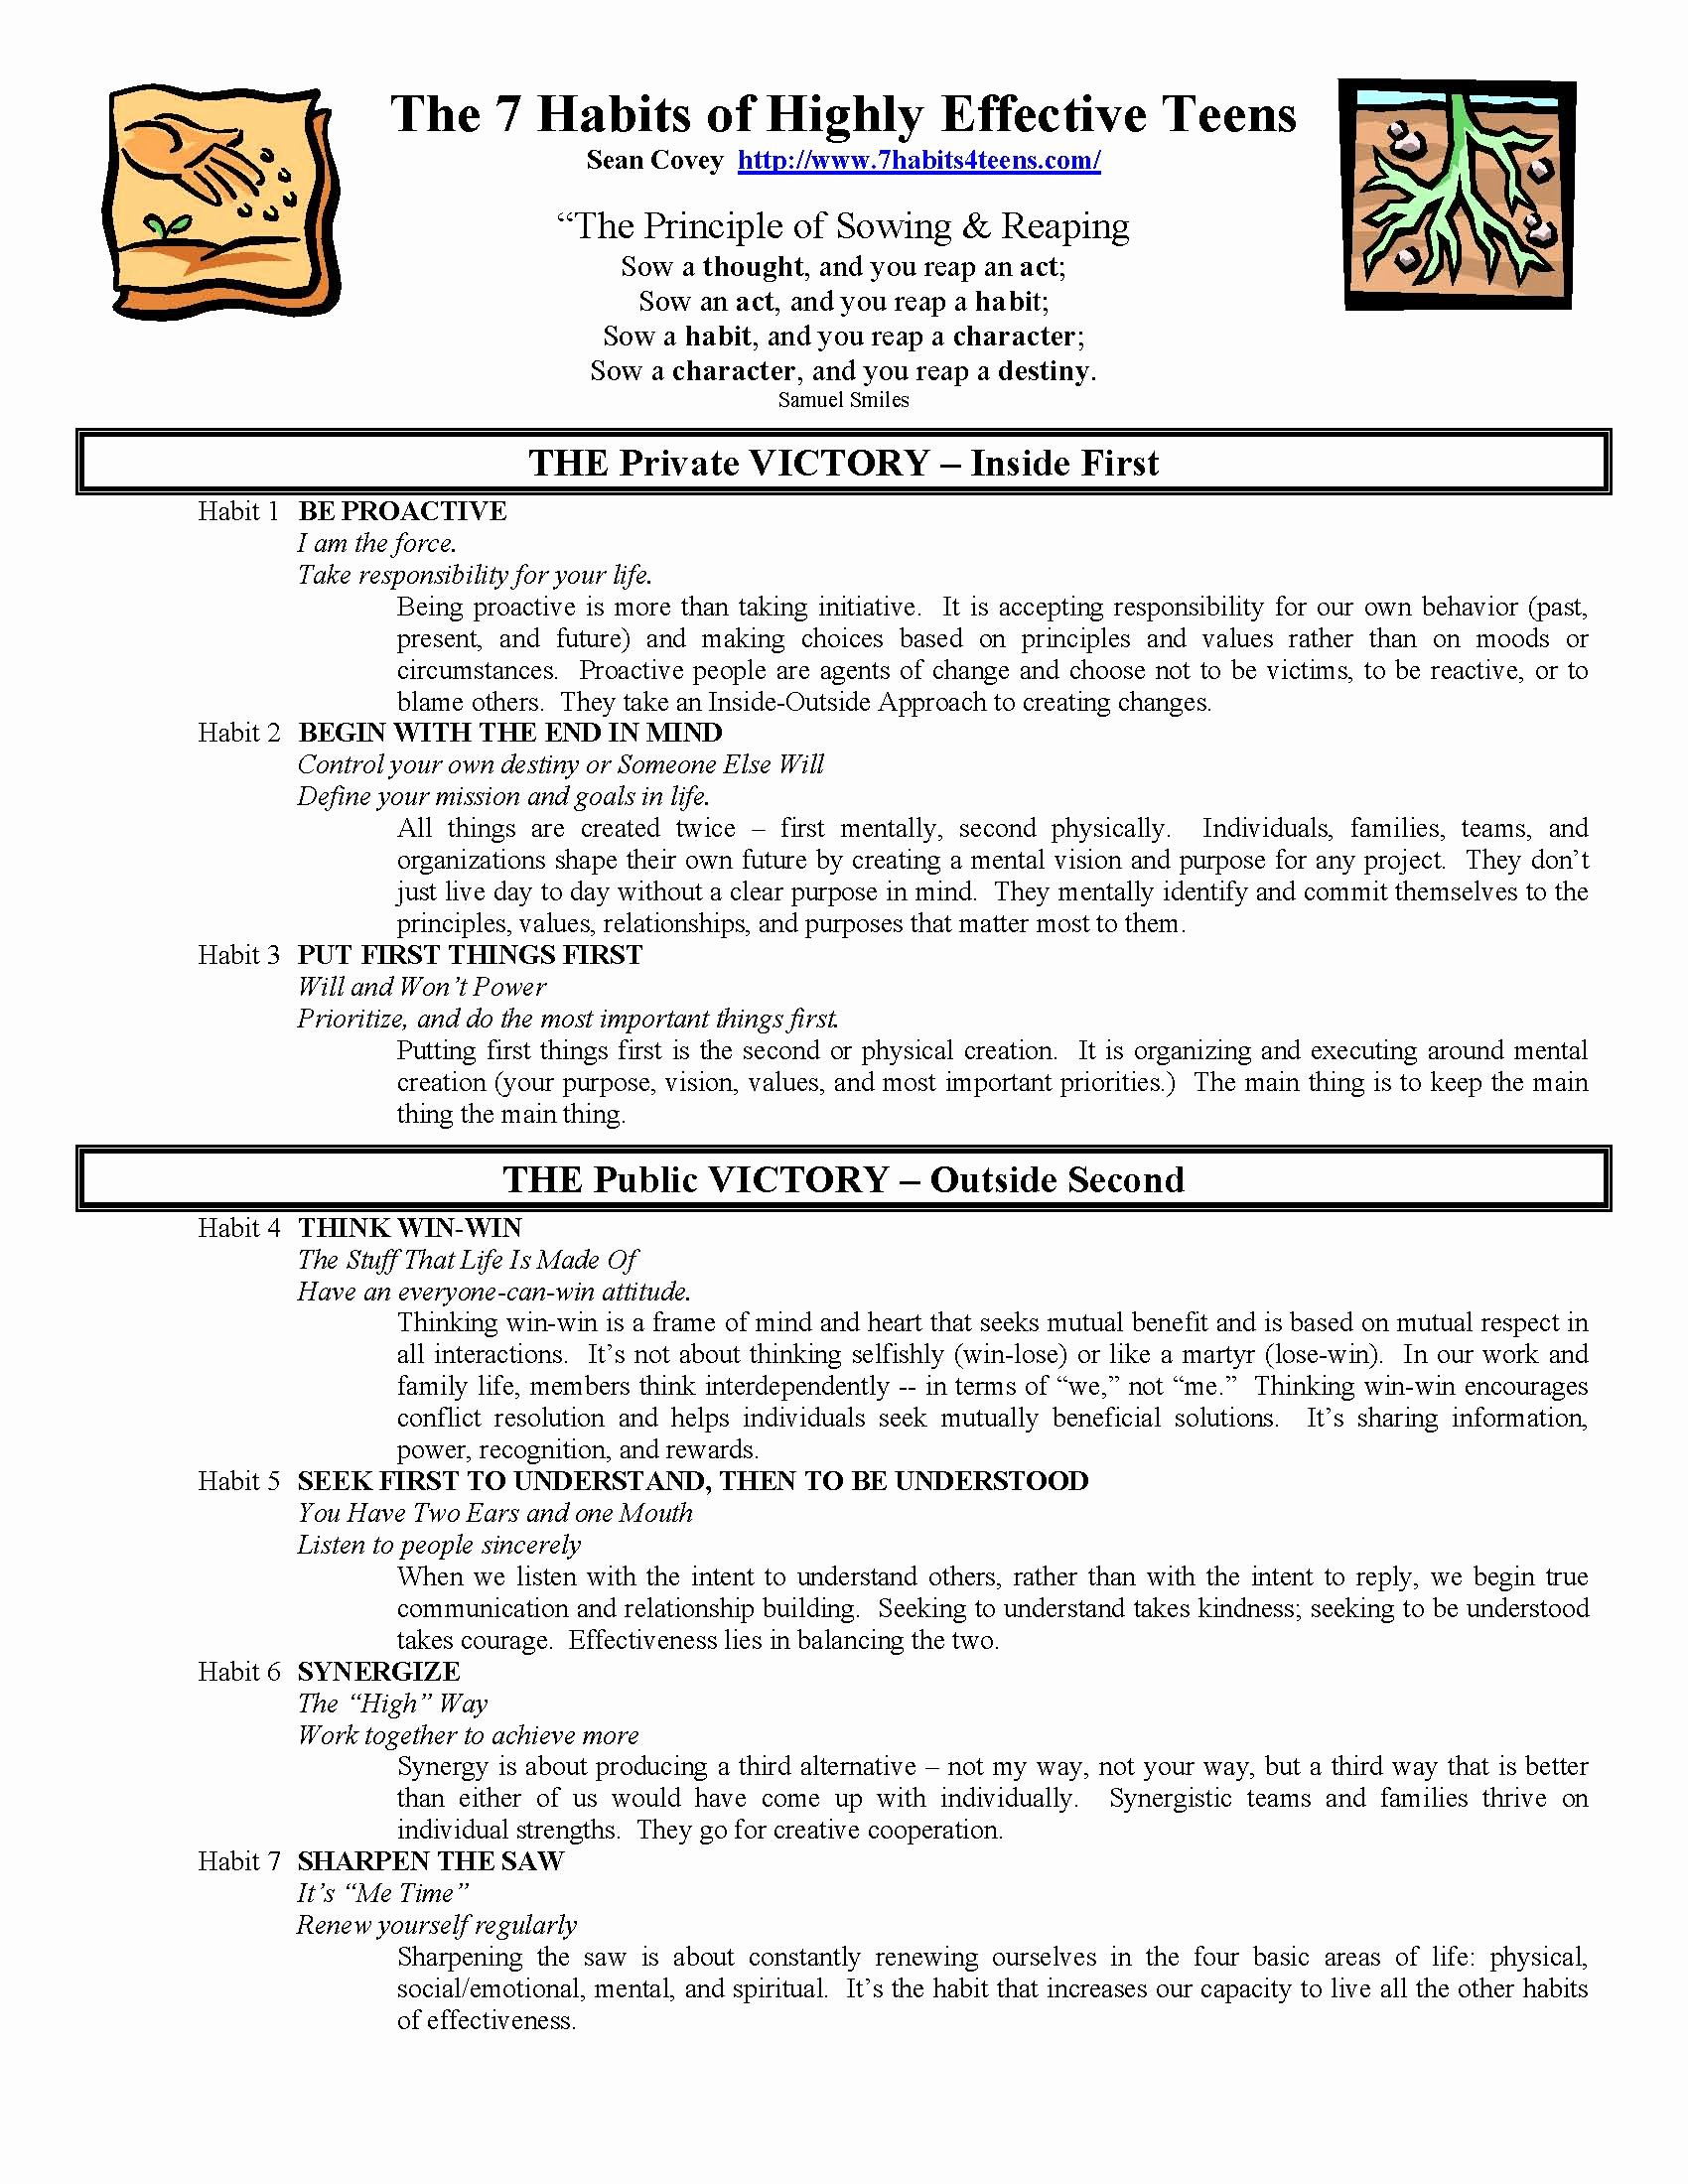 7 Habits Worksheet Pdf Luxury 7 Habits Highly Effective Teens Worksheets the Best